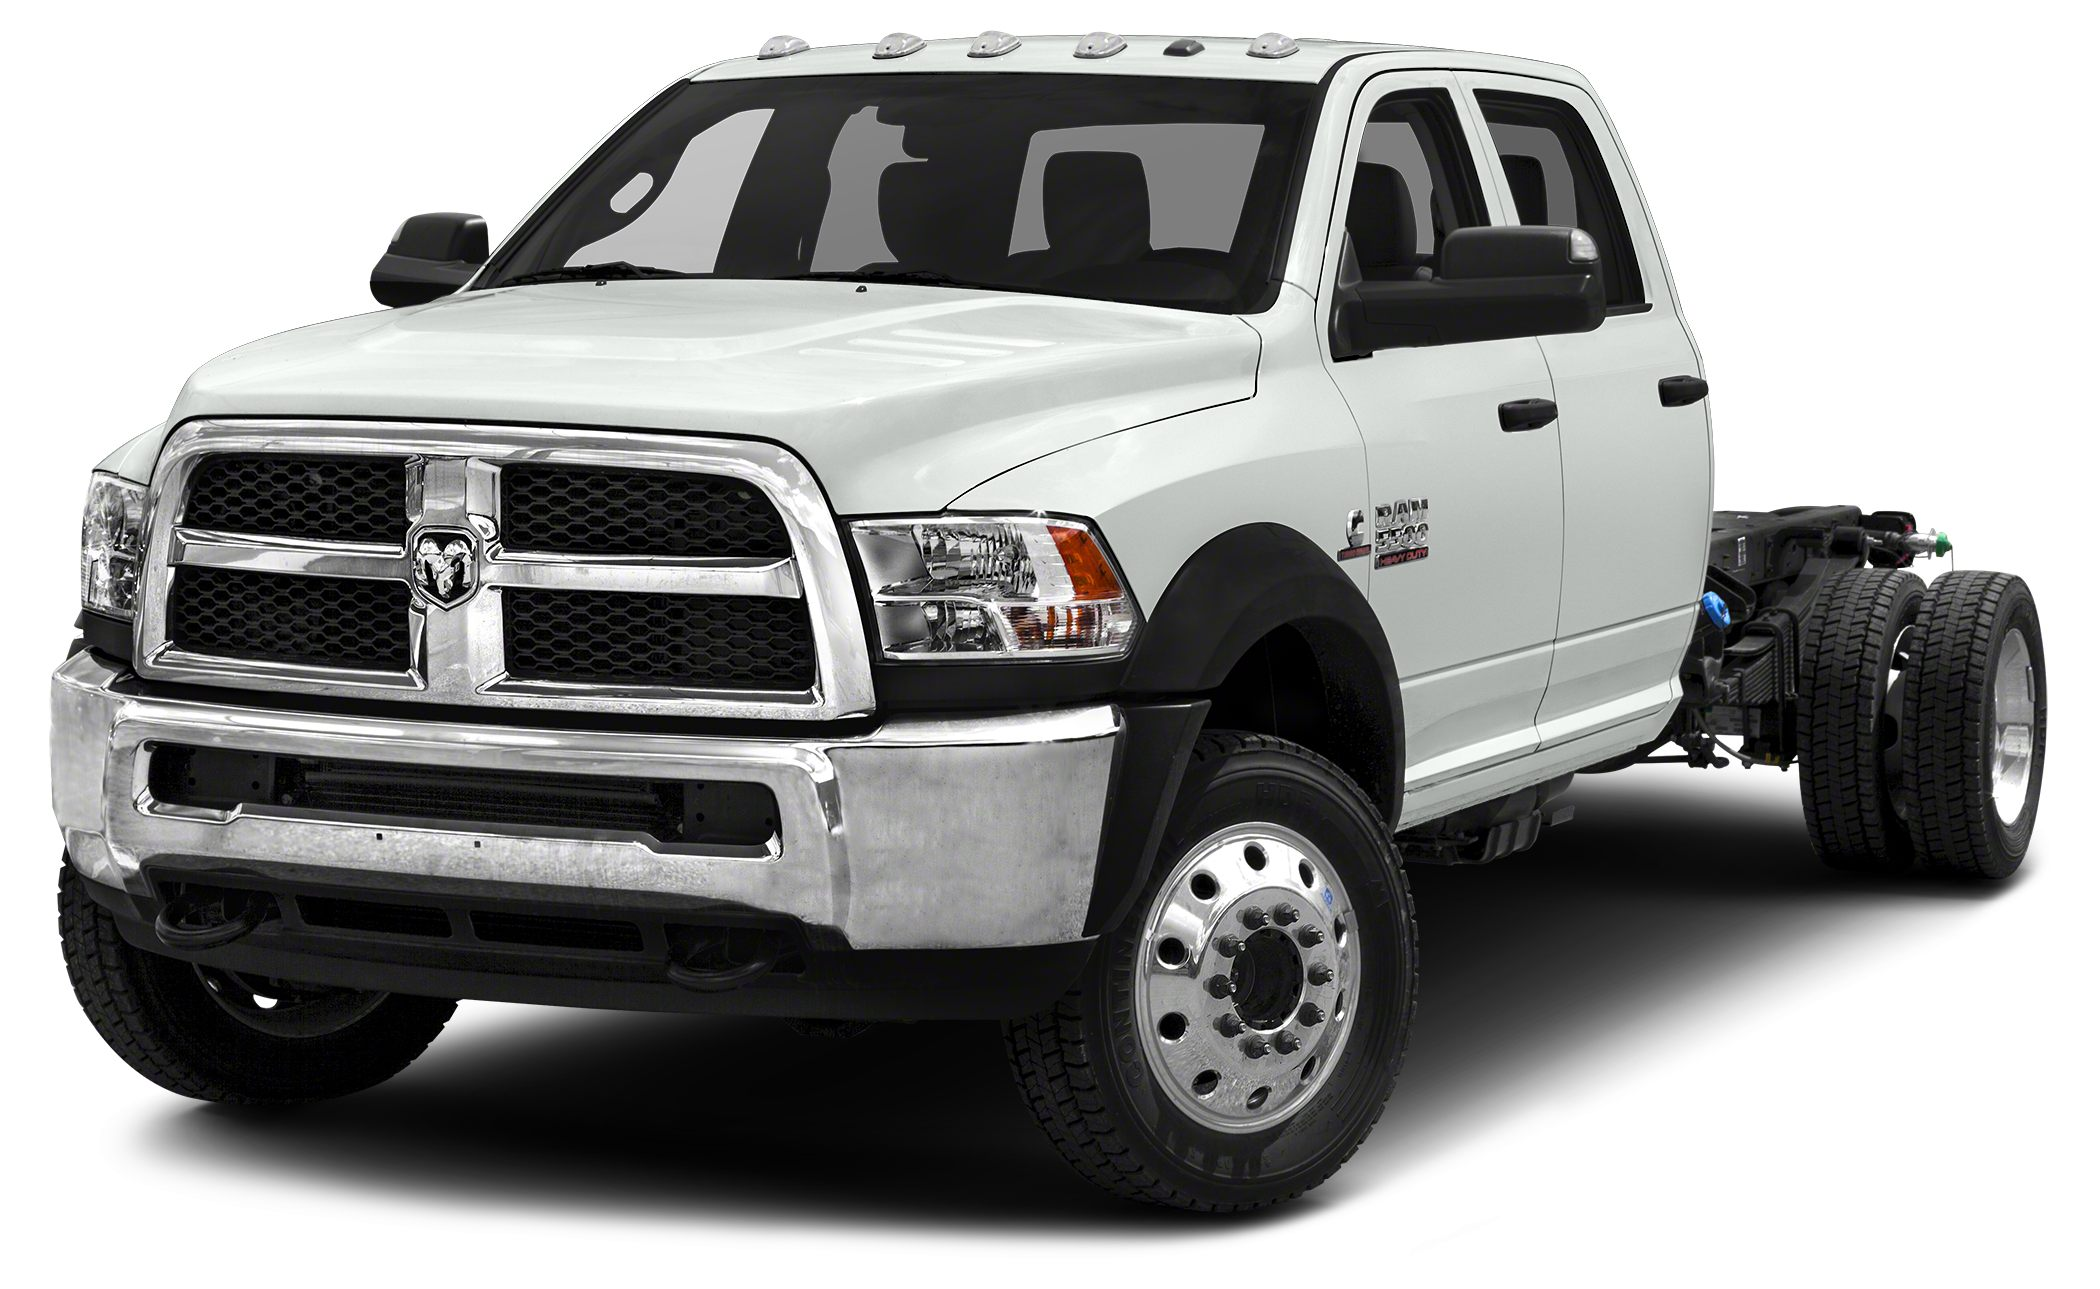 2017 RAM 5500 Chassis Cab TradesmanSLTLaramie Just Arrived This is the perfect do-it-all car